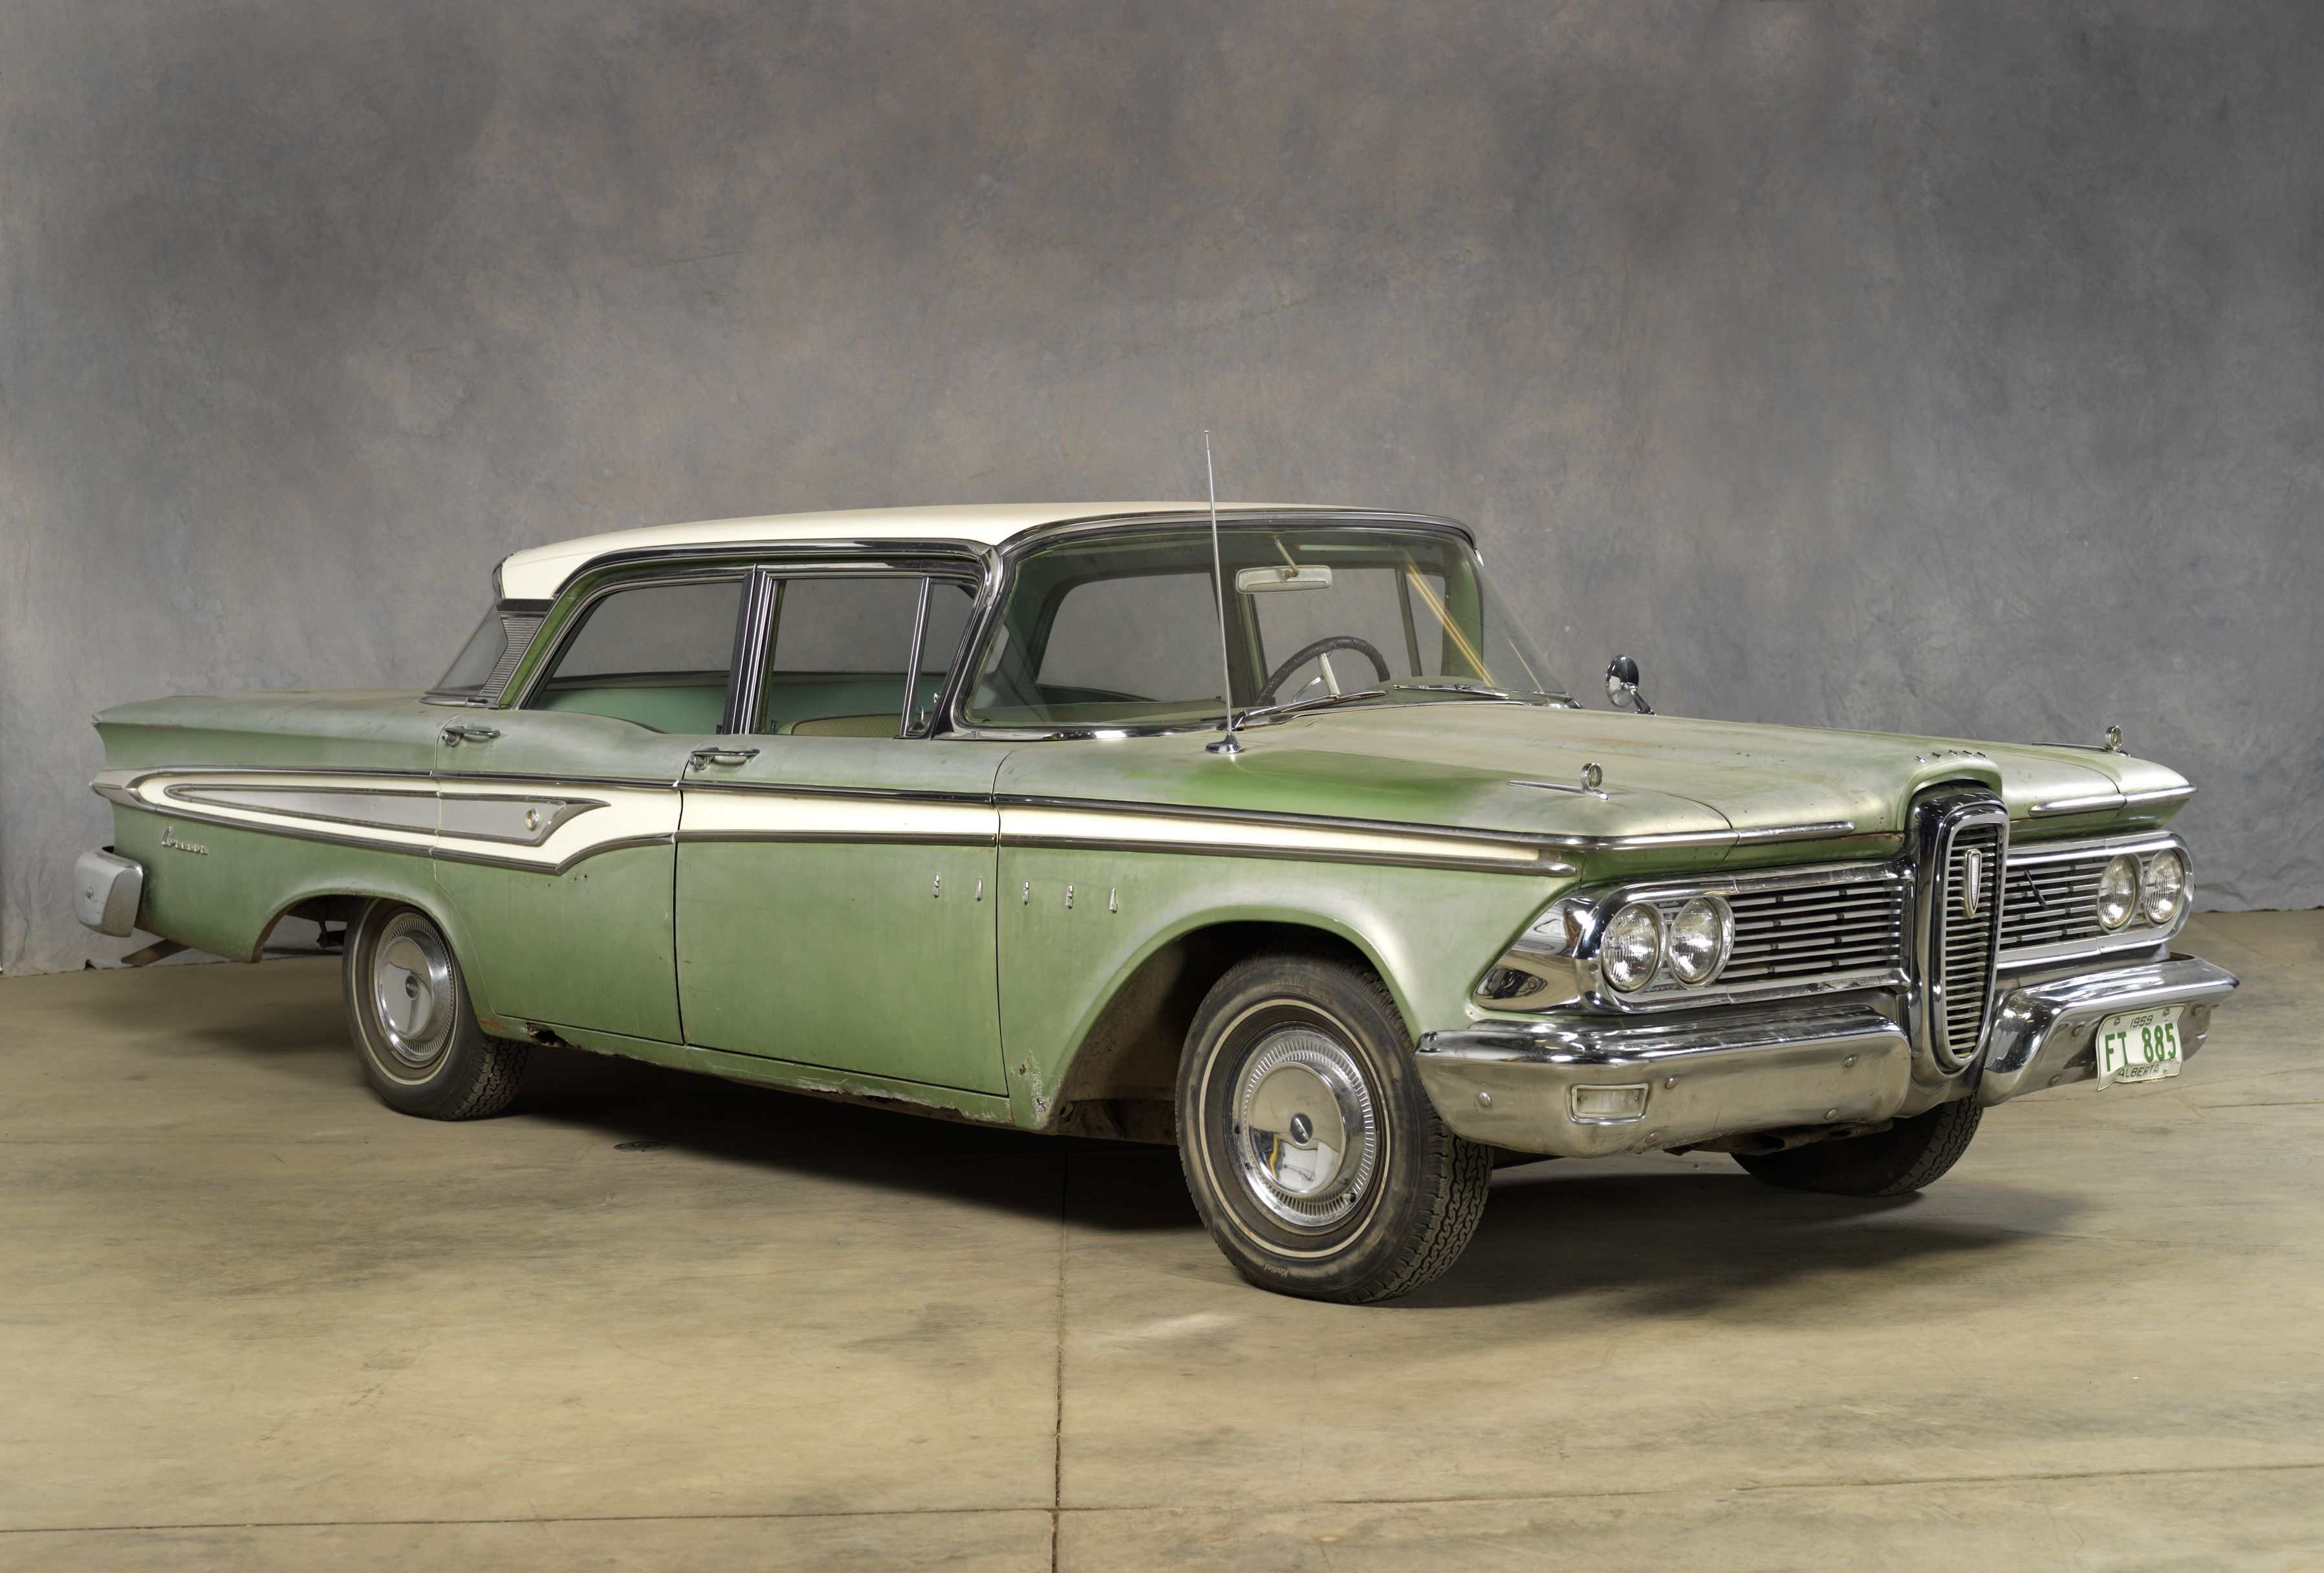 1959 Edsel Corsair Sedan In 1959 Edsels Were Offered Through Mercury Lincoln Dealers As Their Price Leader An Alternative For Edsel Ford Edsel Classic Cars